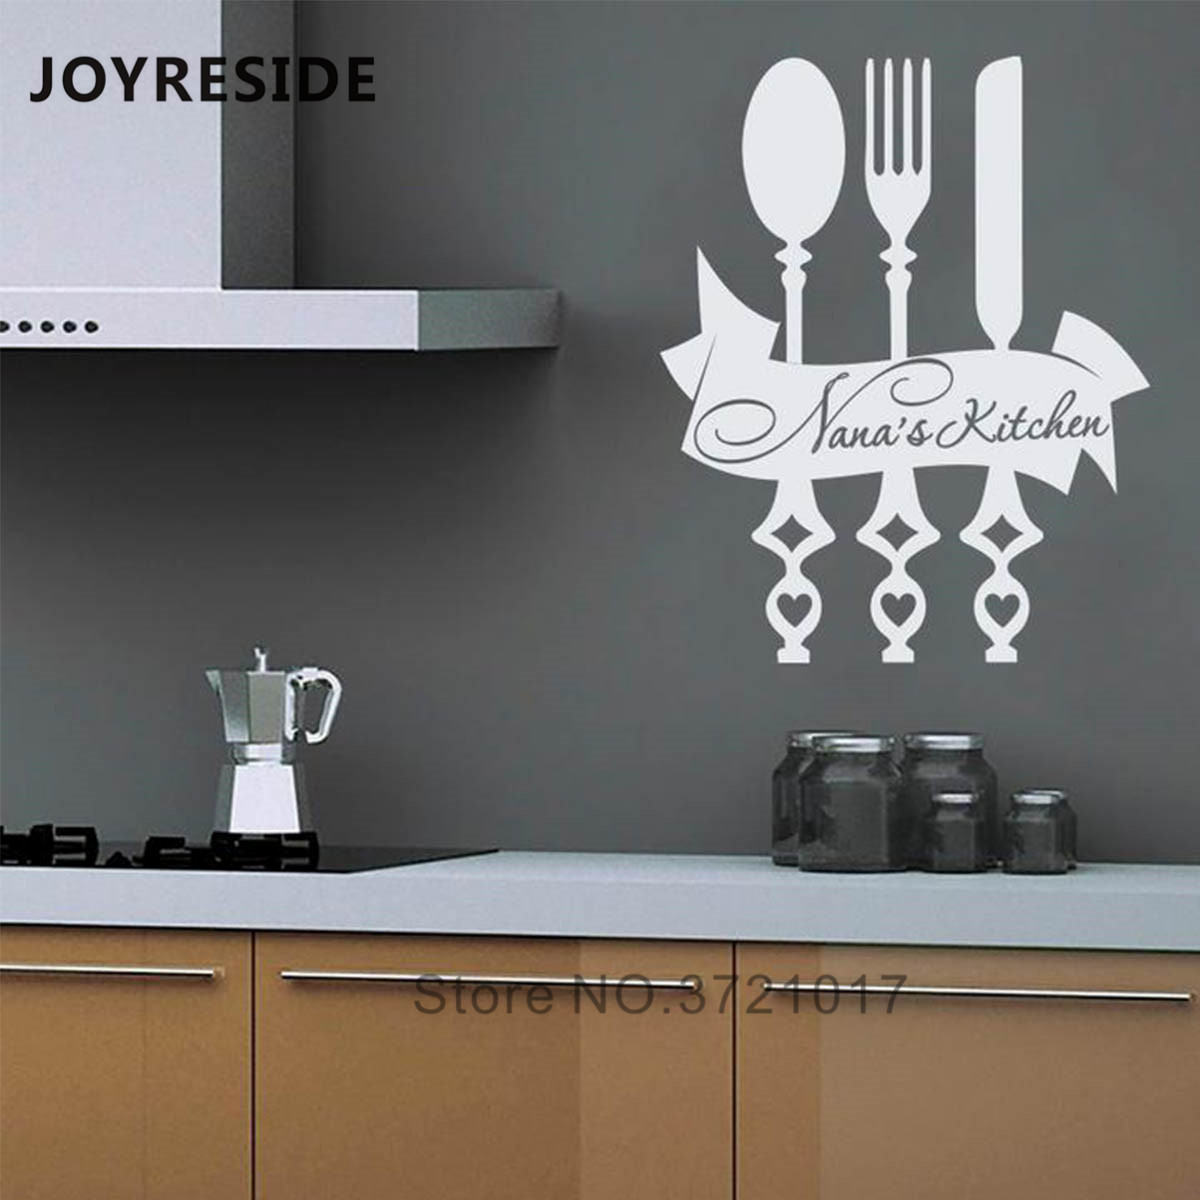 Joyreside Personalized Name Kitchen Wall Decals Fork Knife Kitchen Wall Decal Home Modern Decor Custom Name Vinyl Sticker Wm300 Wall Stickers Aliexpress